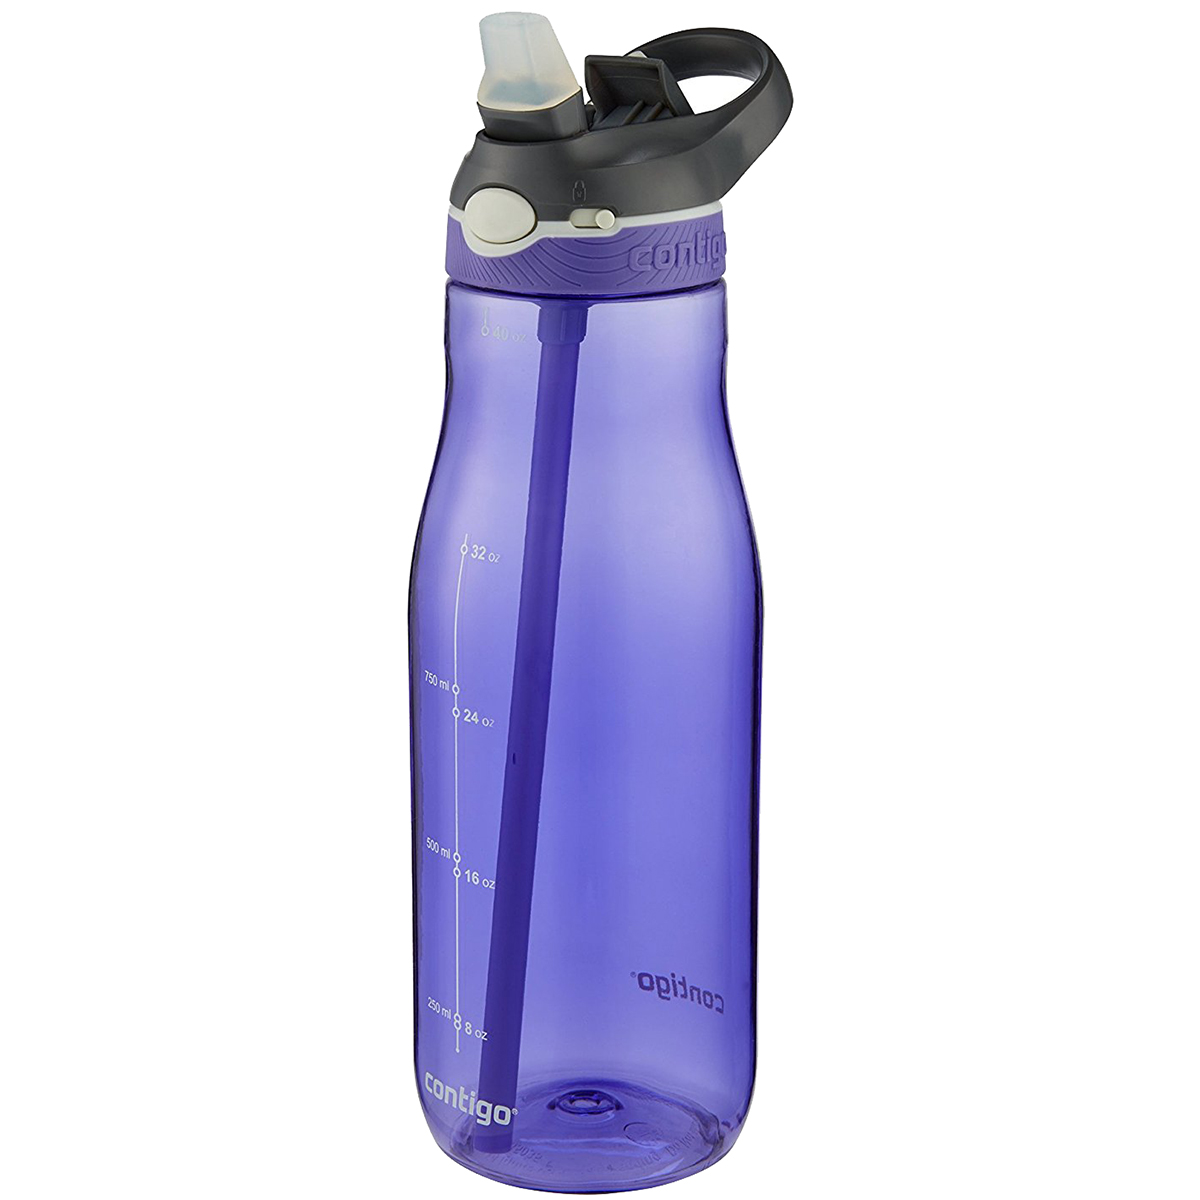 Contigo-40-oz-Ashland-Autospout-Water-Bottle thumbnail 8